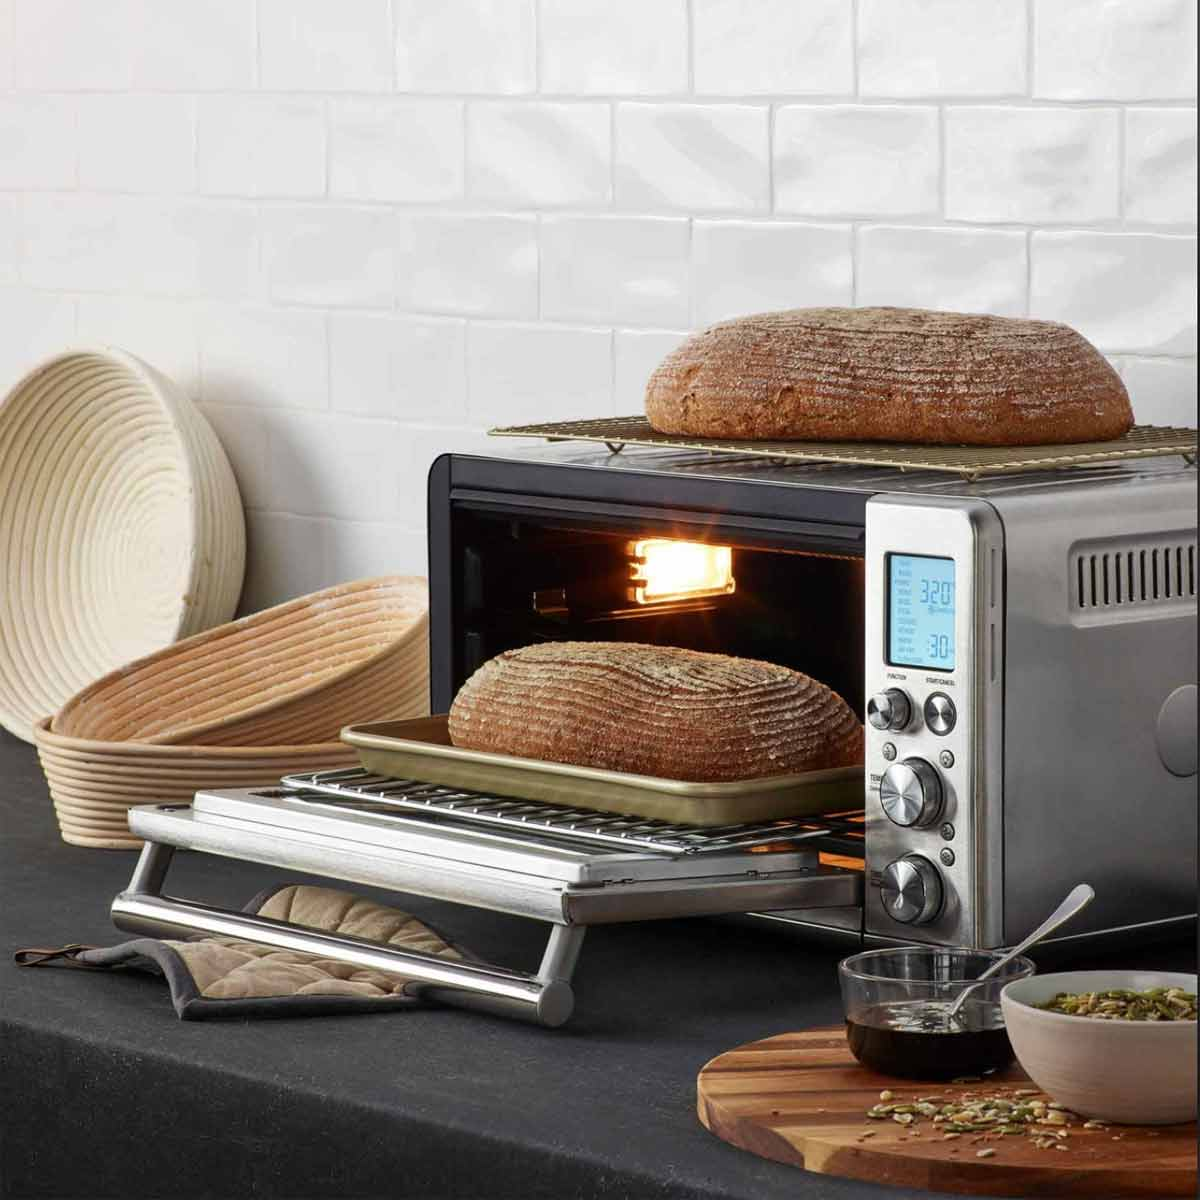 Breville Smart Oven Pro baking bread